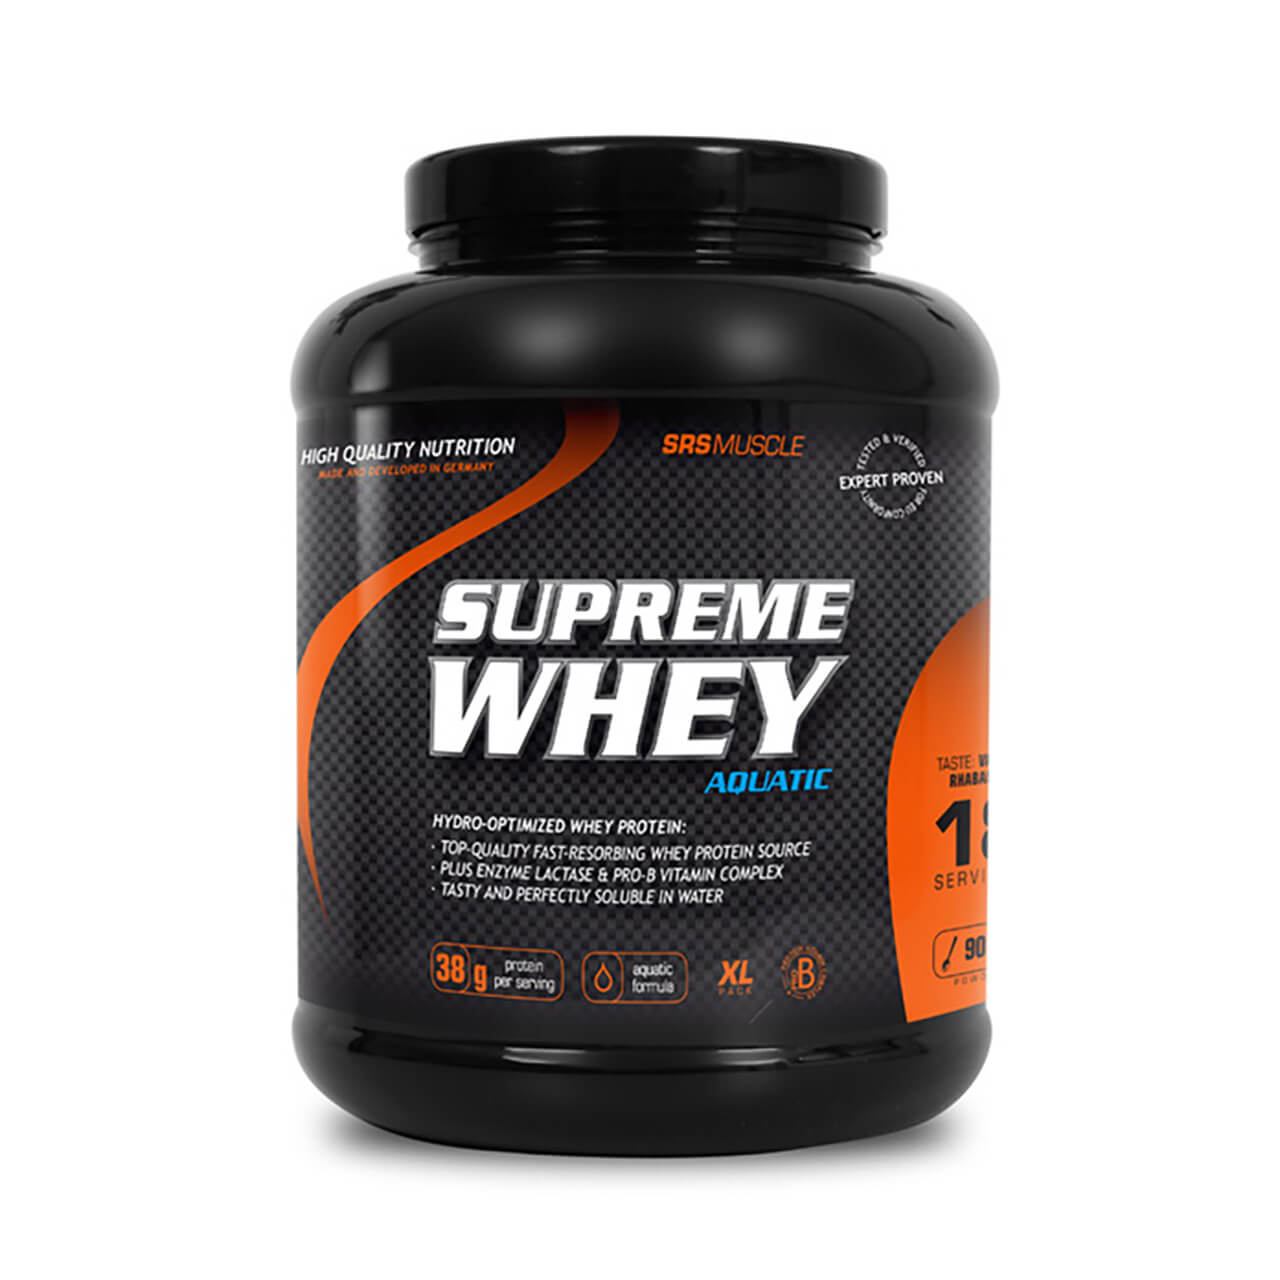 srs muscle supreme whey 900g dose online kaufen vitalymp. Black Bedroom Furniture Sets. Home Design Ideas